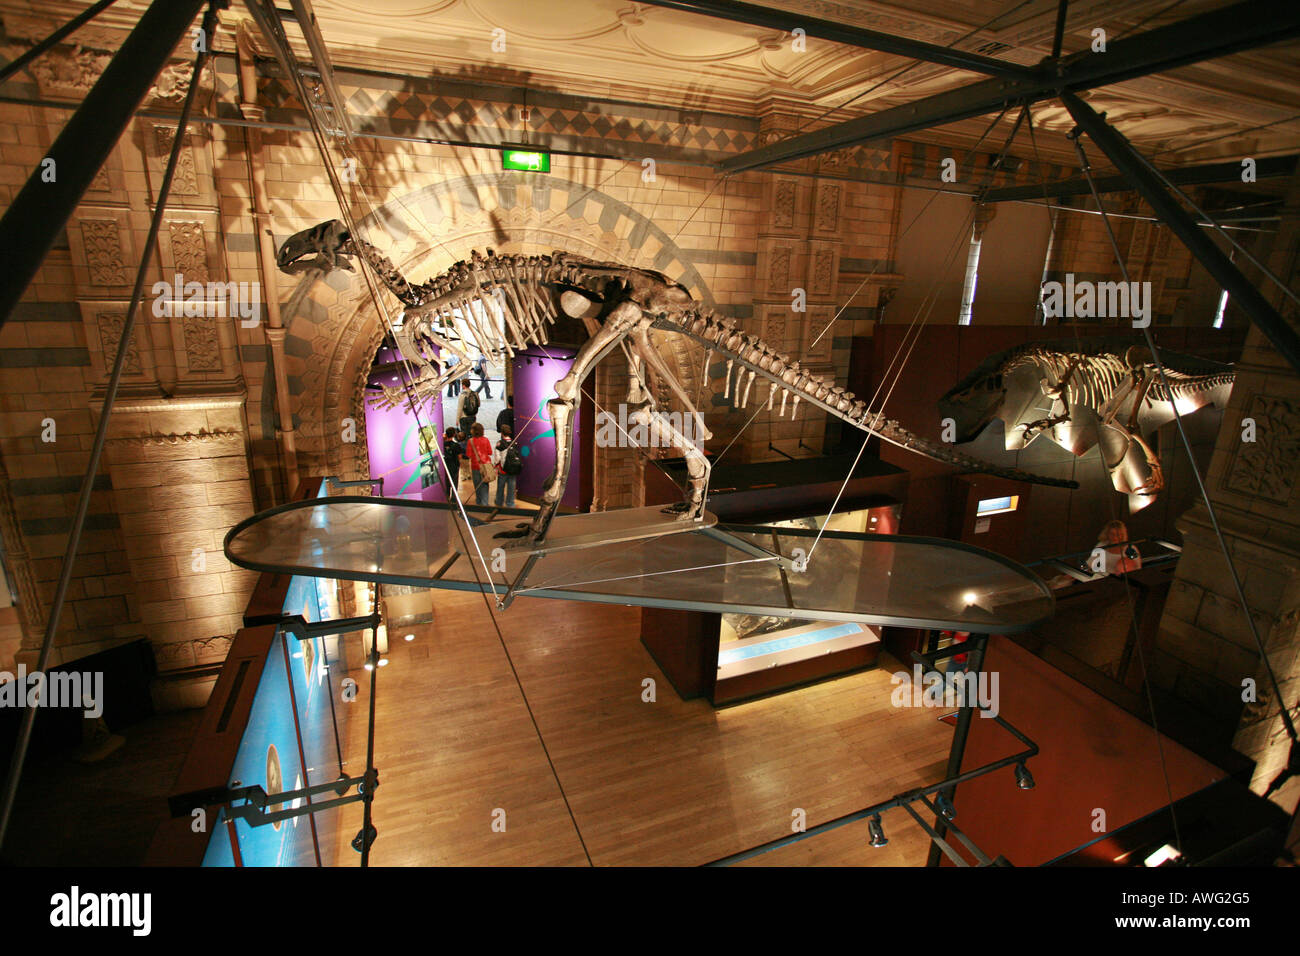 Tourists visit the popular prehistoric dinosaur exhibition at the world famous Natural History Museum London England Britain UK - Stock Image